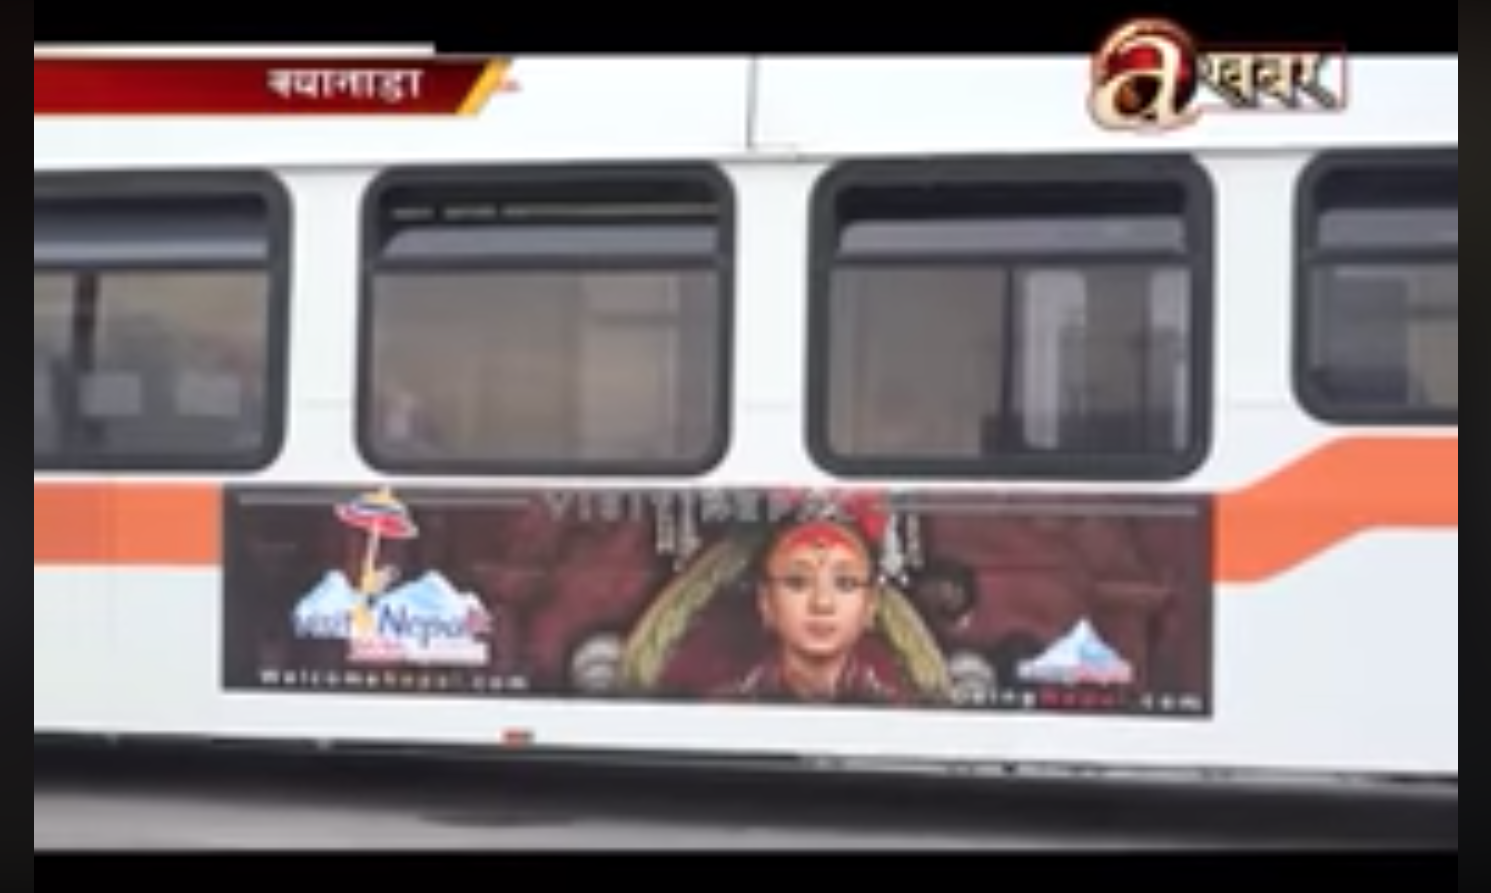 City Buses In Canada Promoting Visit Nepal-2020